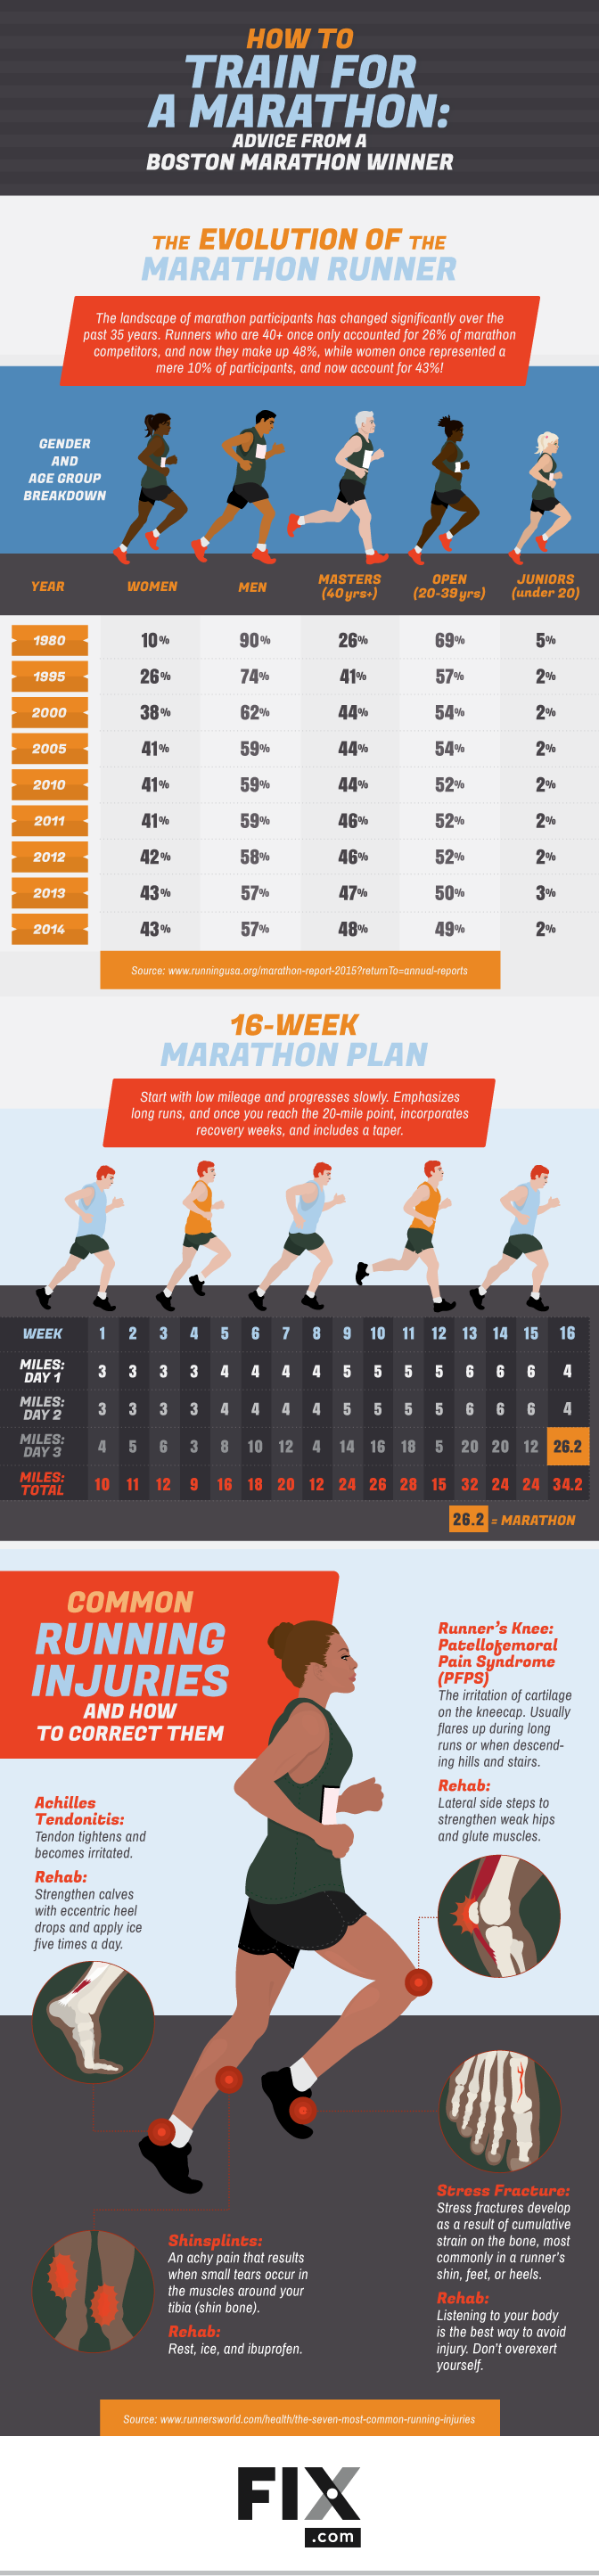 How to Train for a Marathon #Infographic